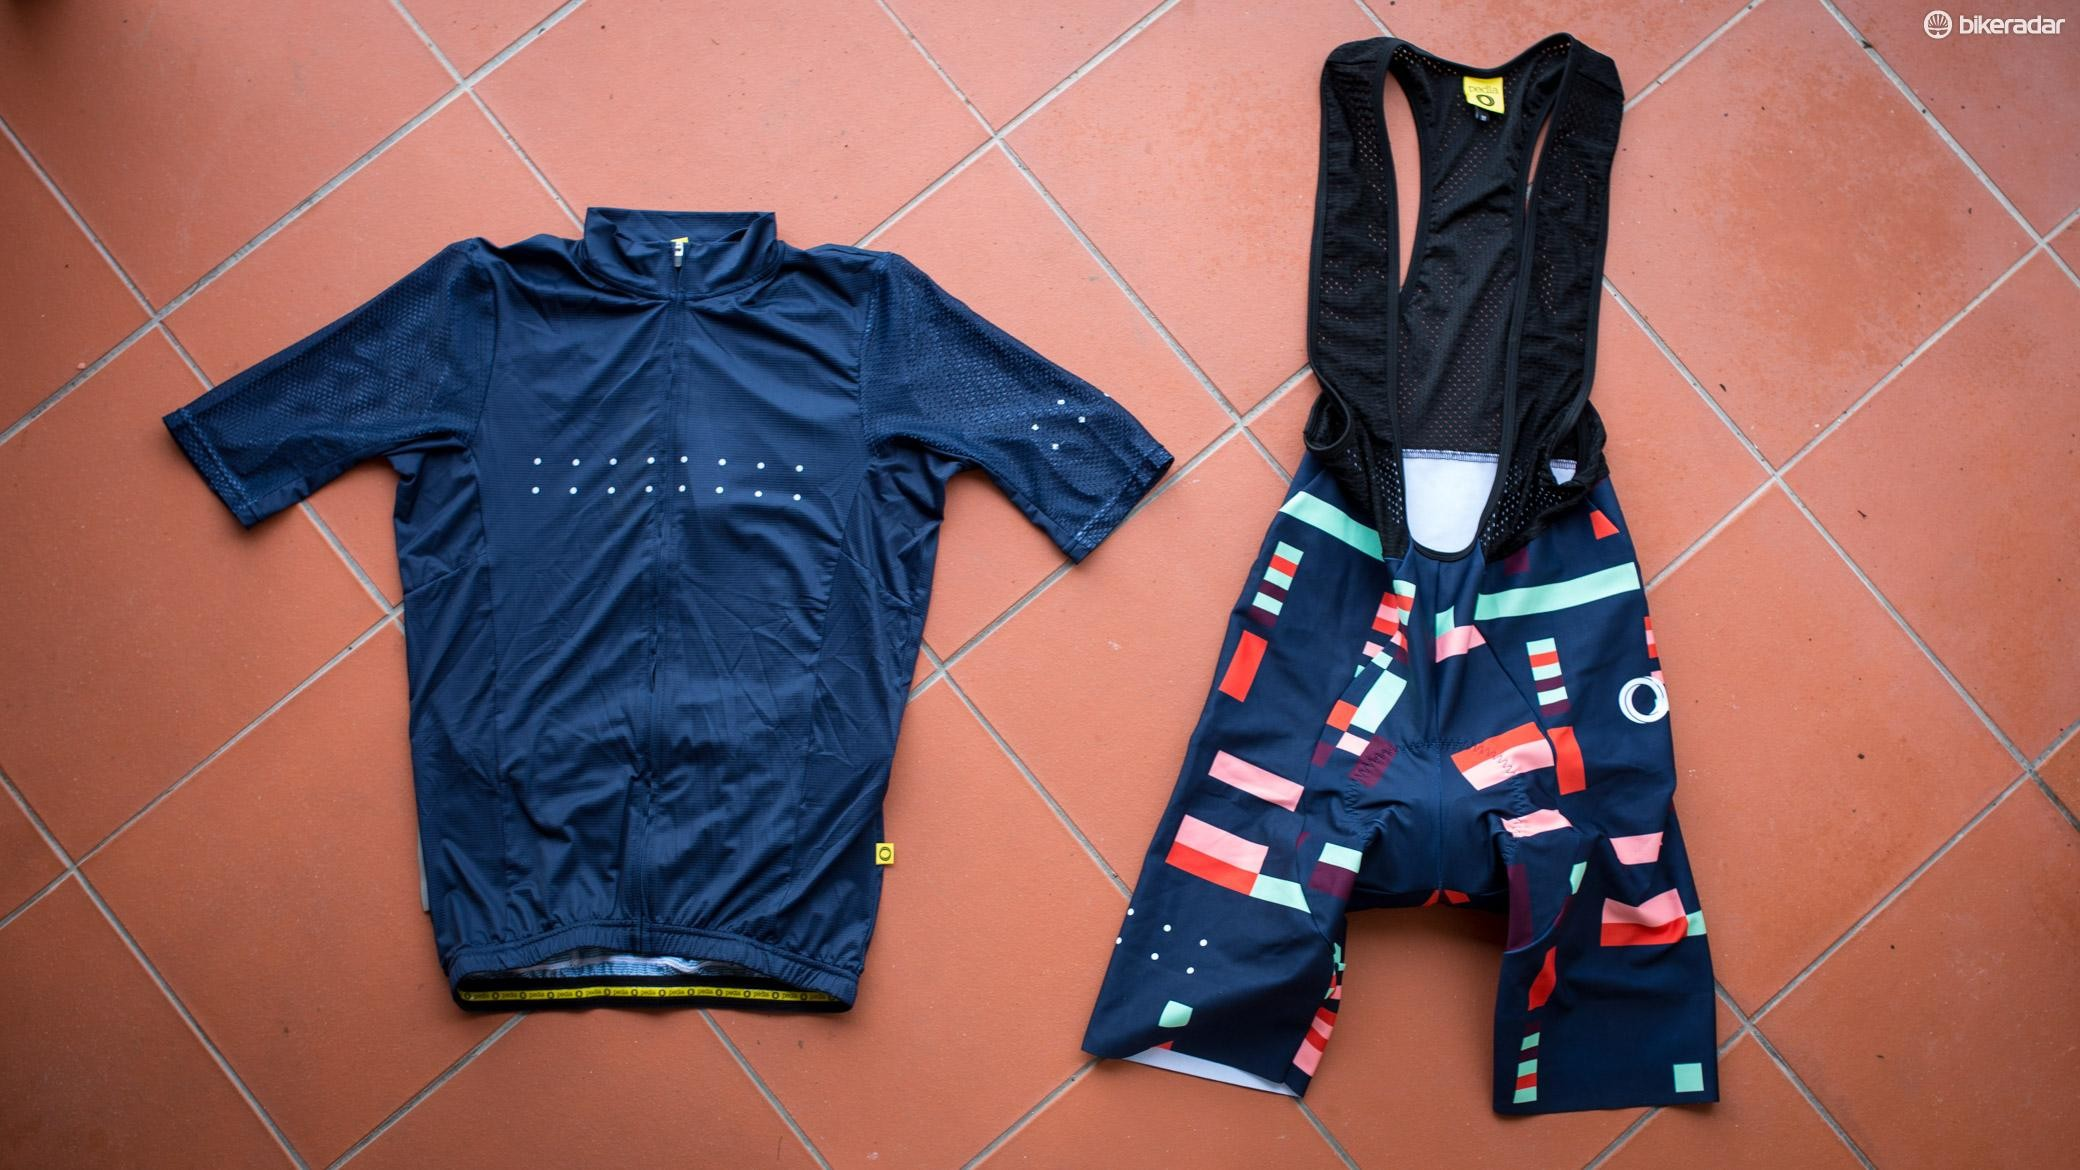 Pedla's new Full Gas LunaAIR jersey and SuperFIT G+ bibshorts